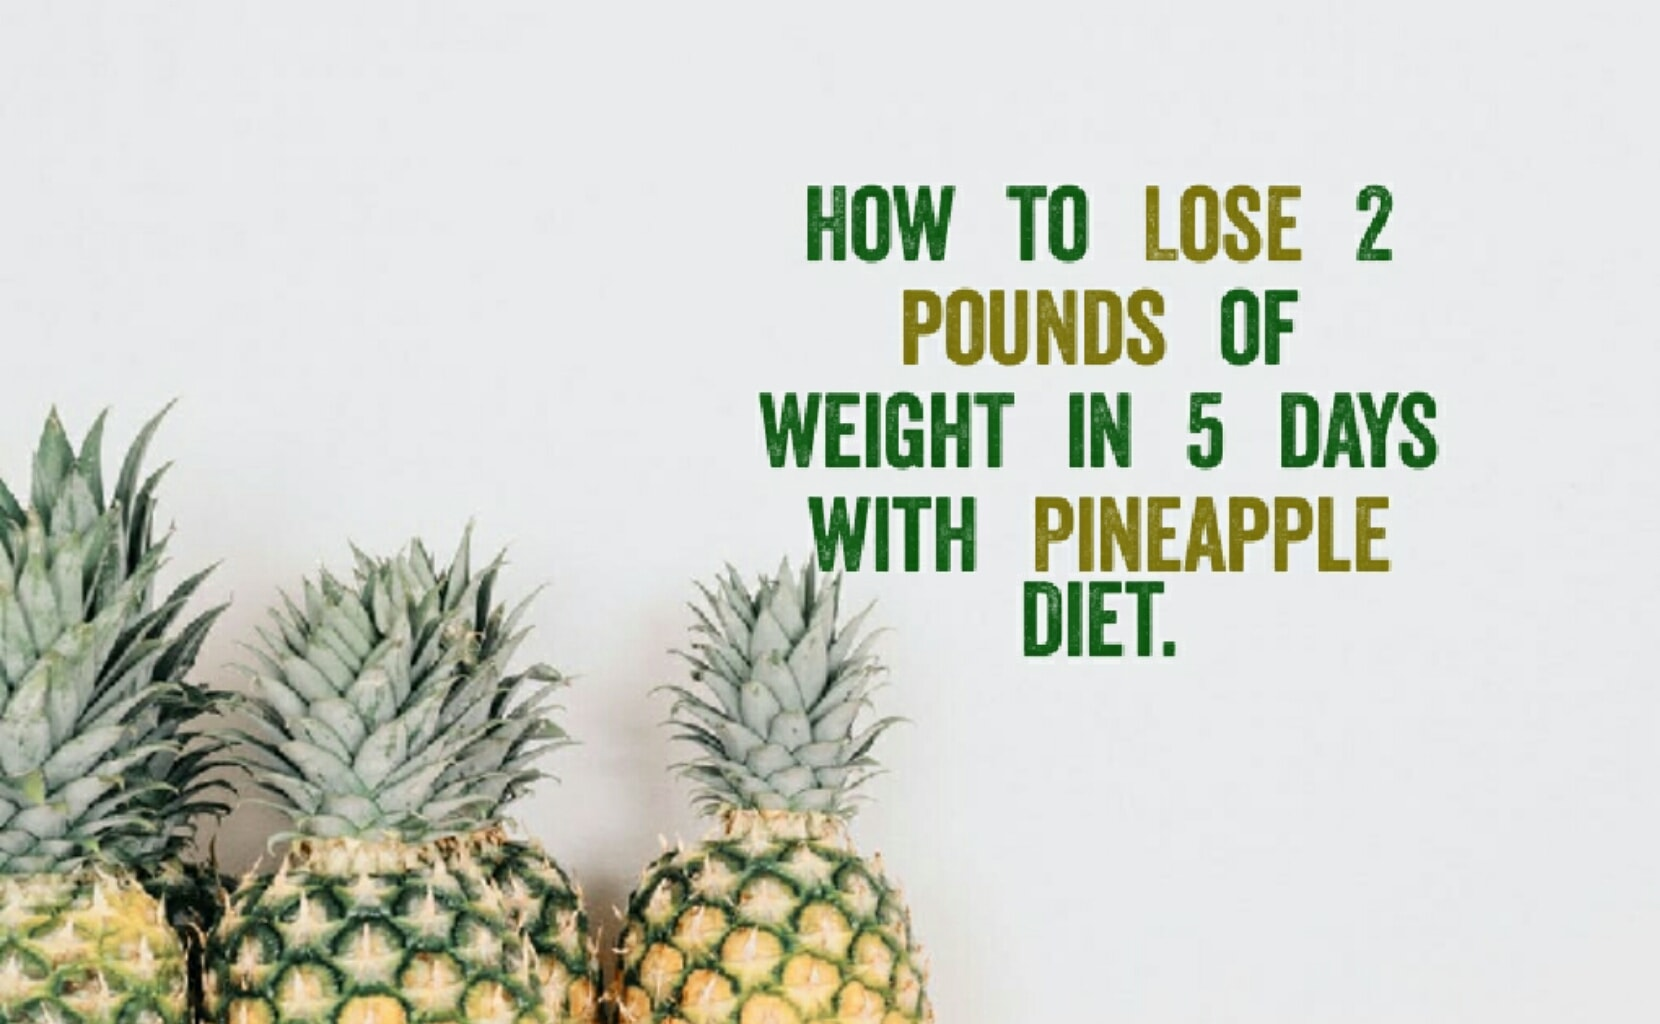 Lose 2 pounds of weight in 5 days with Pineapple Diet.